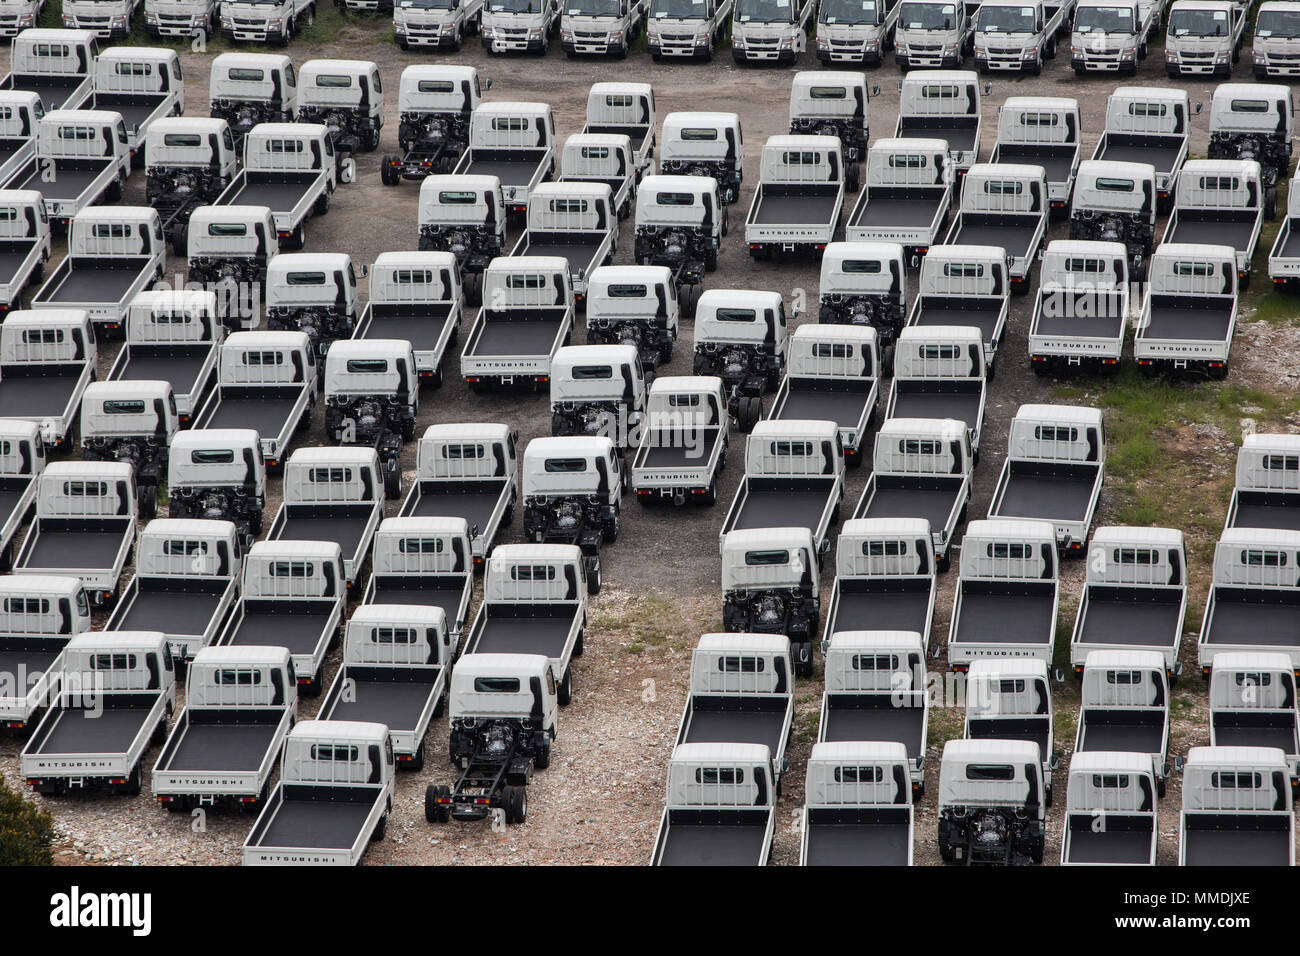 An aerial or drone view of multiple industrial light vehicles parked. Stock Photo